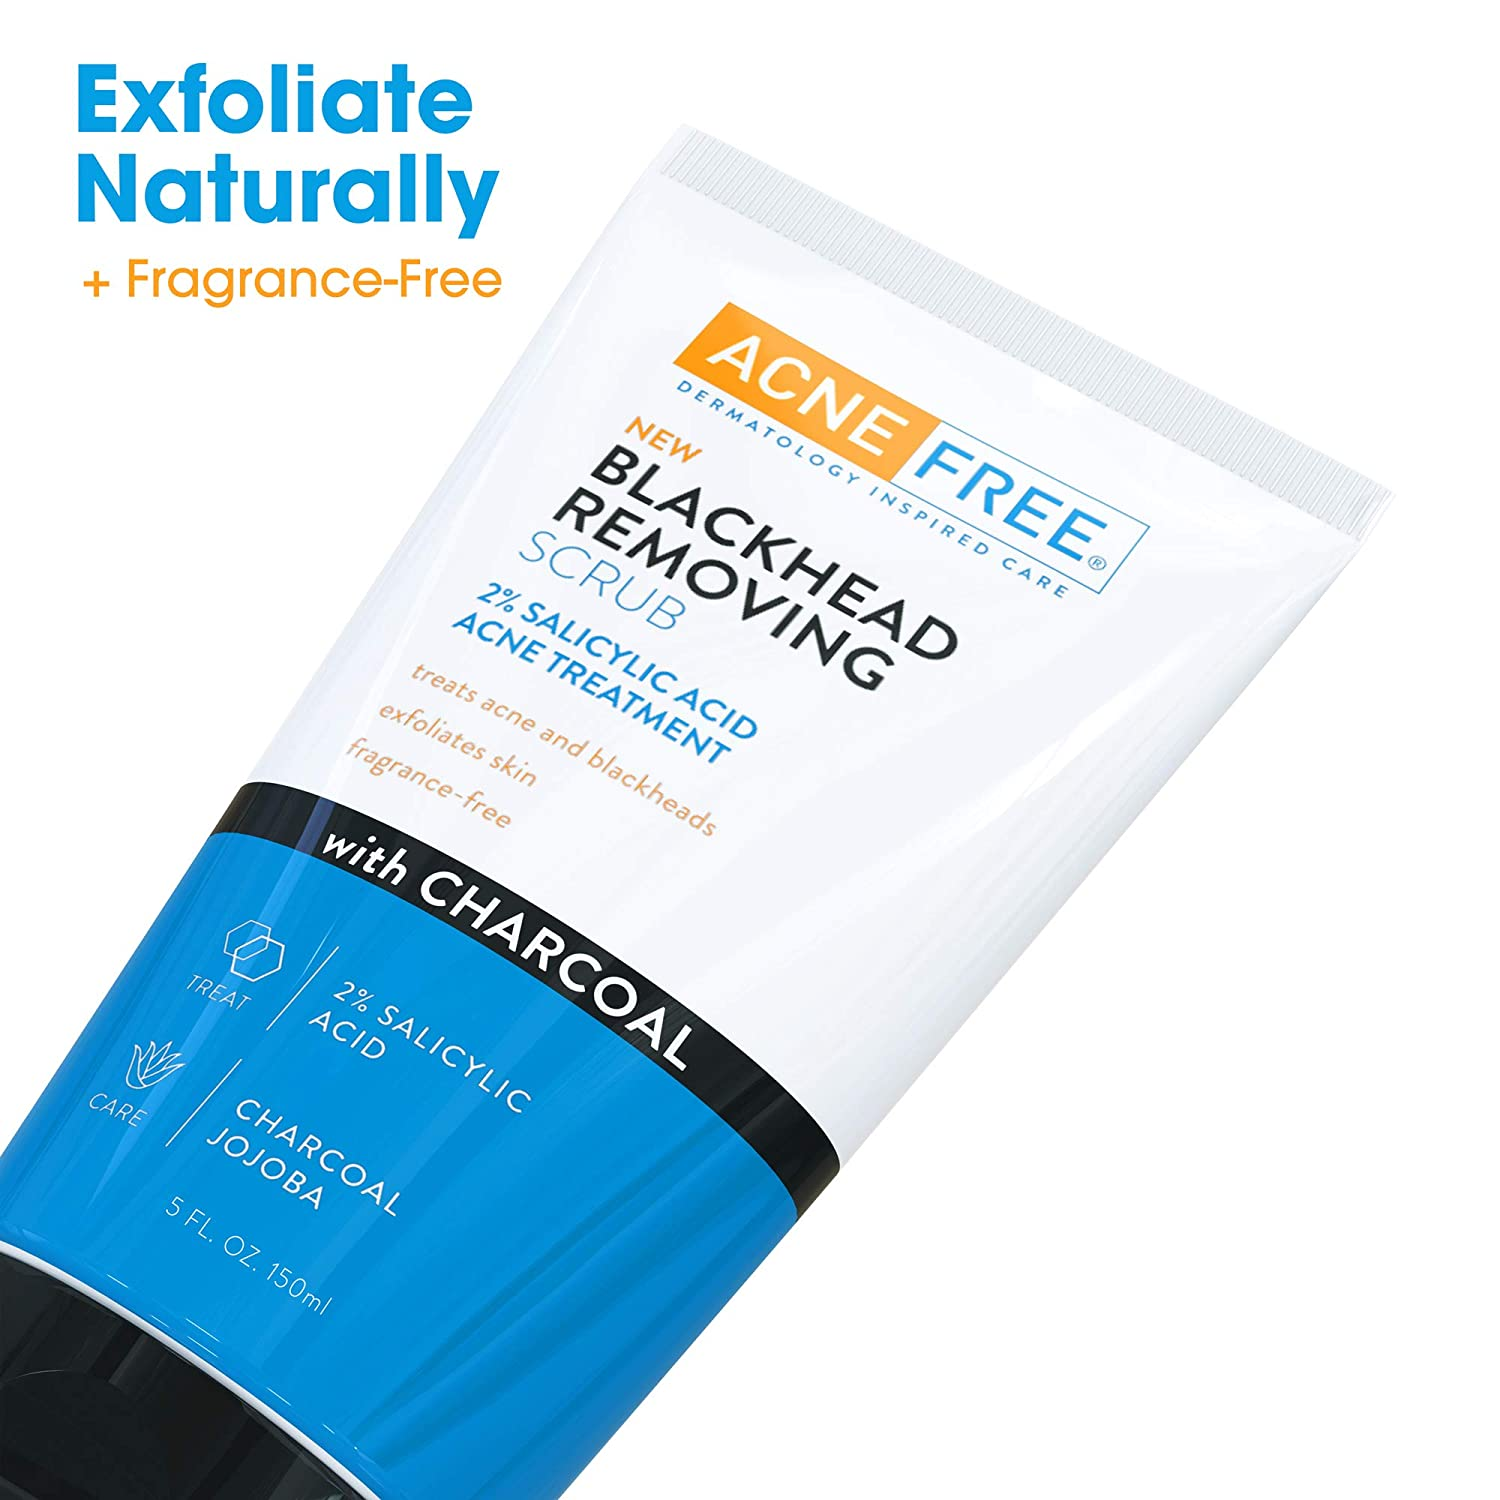 Acne Free Blackhead Removing Exfoliating Face Scrub with 2% Salicylic Acid and Charcoal Jojoba - Daily Wash, Skin Care Face Scrub Acne Treatment For Men Women and Teens With Acne Prone Skin - 5 oz: Beauty